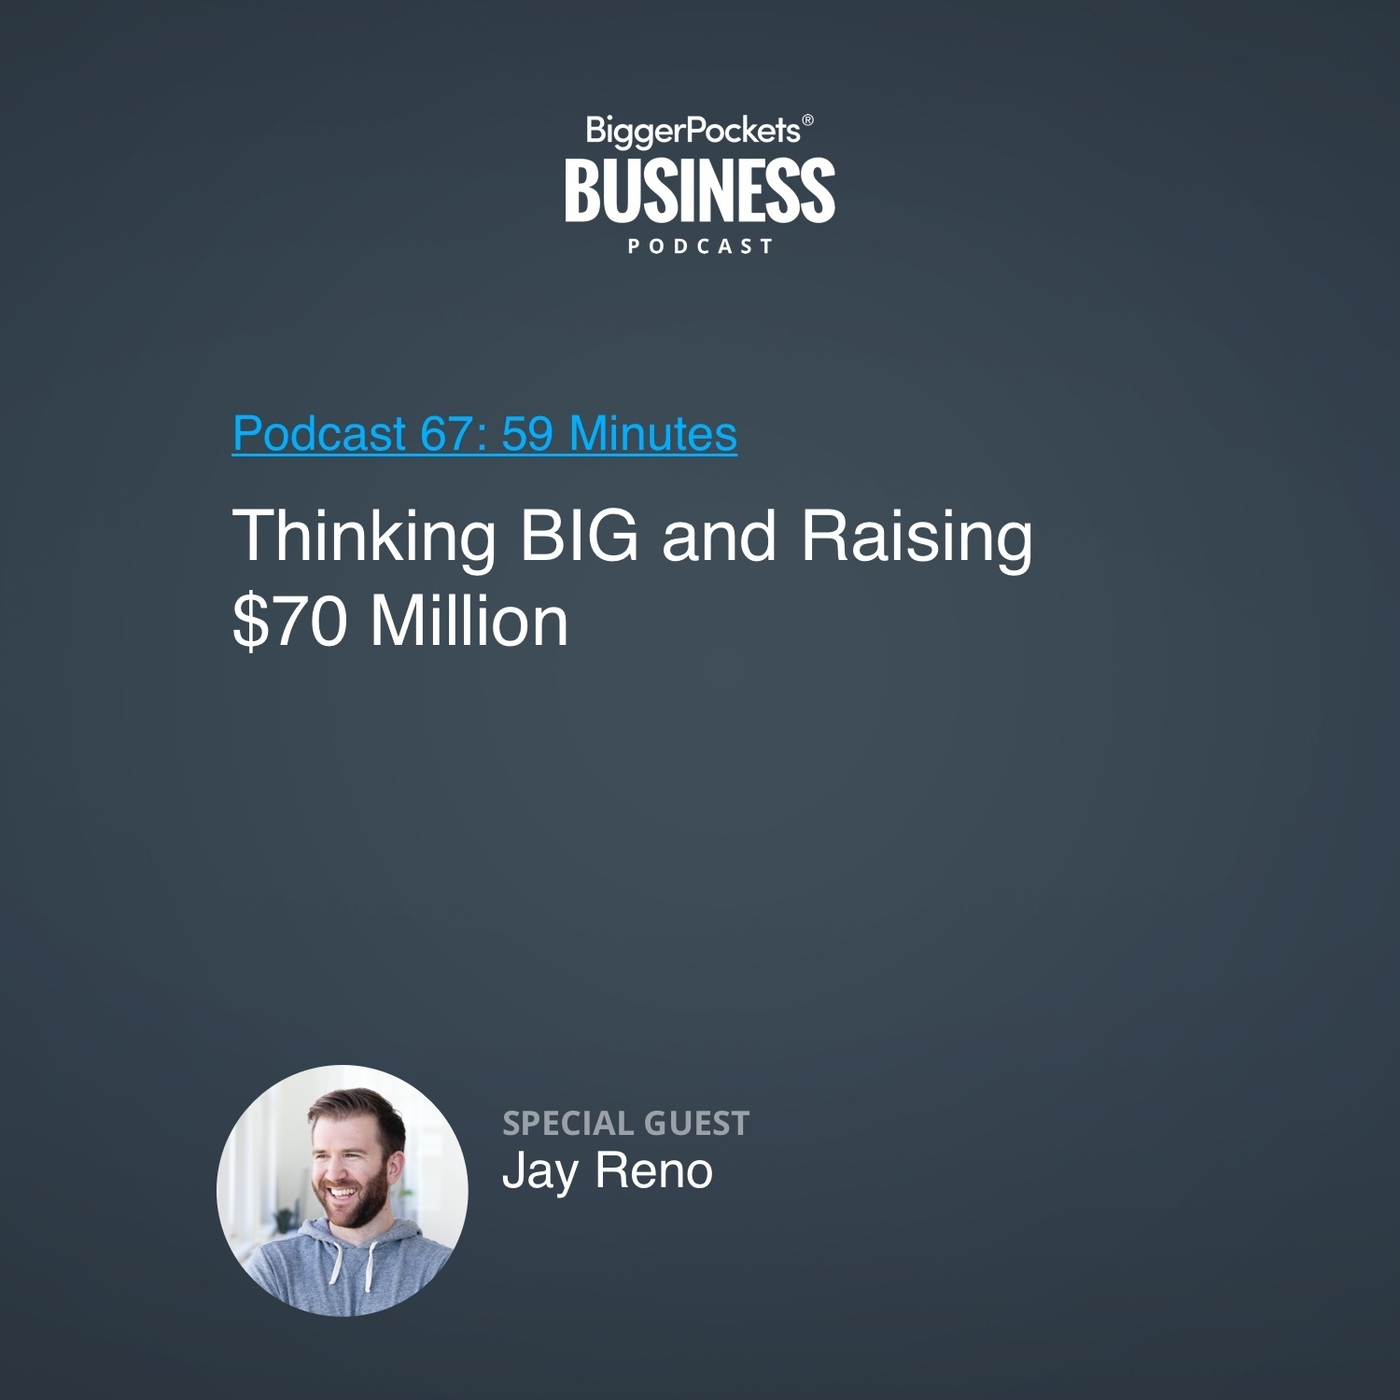 67: BiggerPockets Business Podcast 67: Thinking BIG and Raising $70 Million with Jay Reno